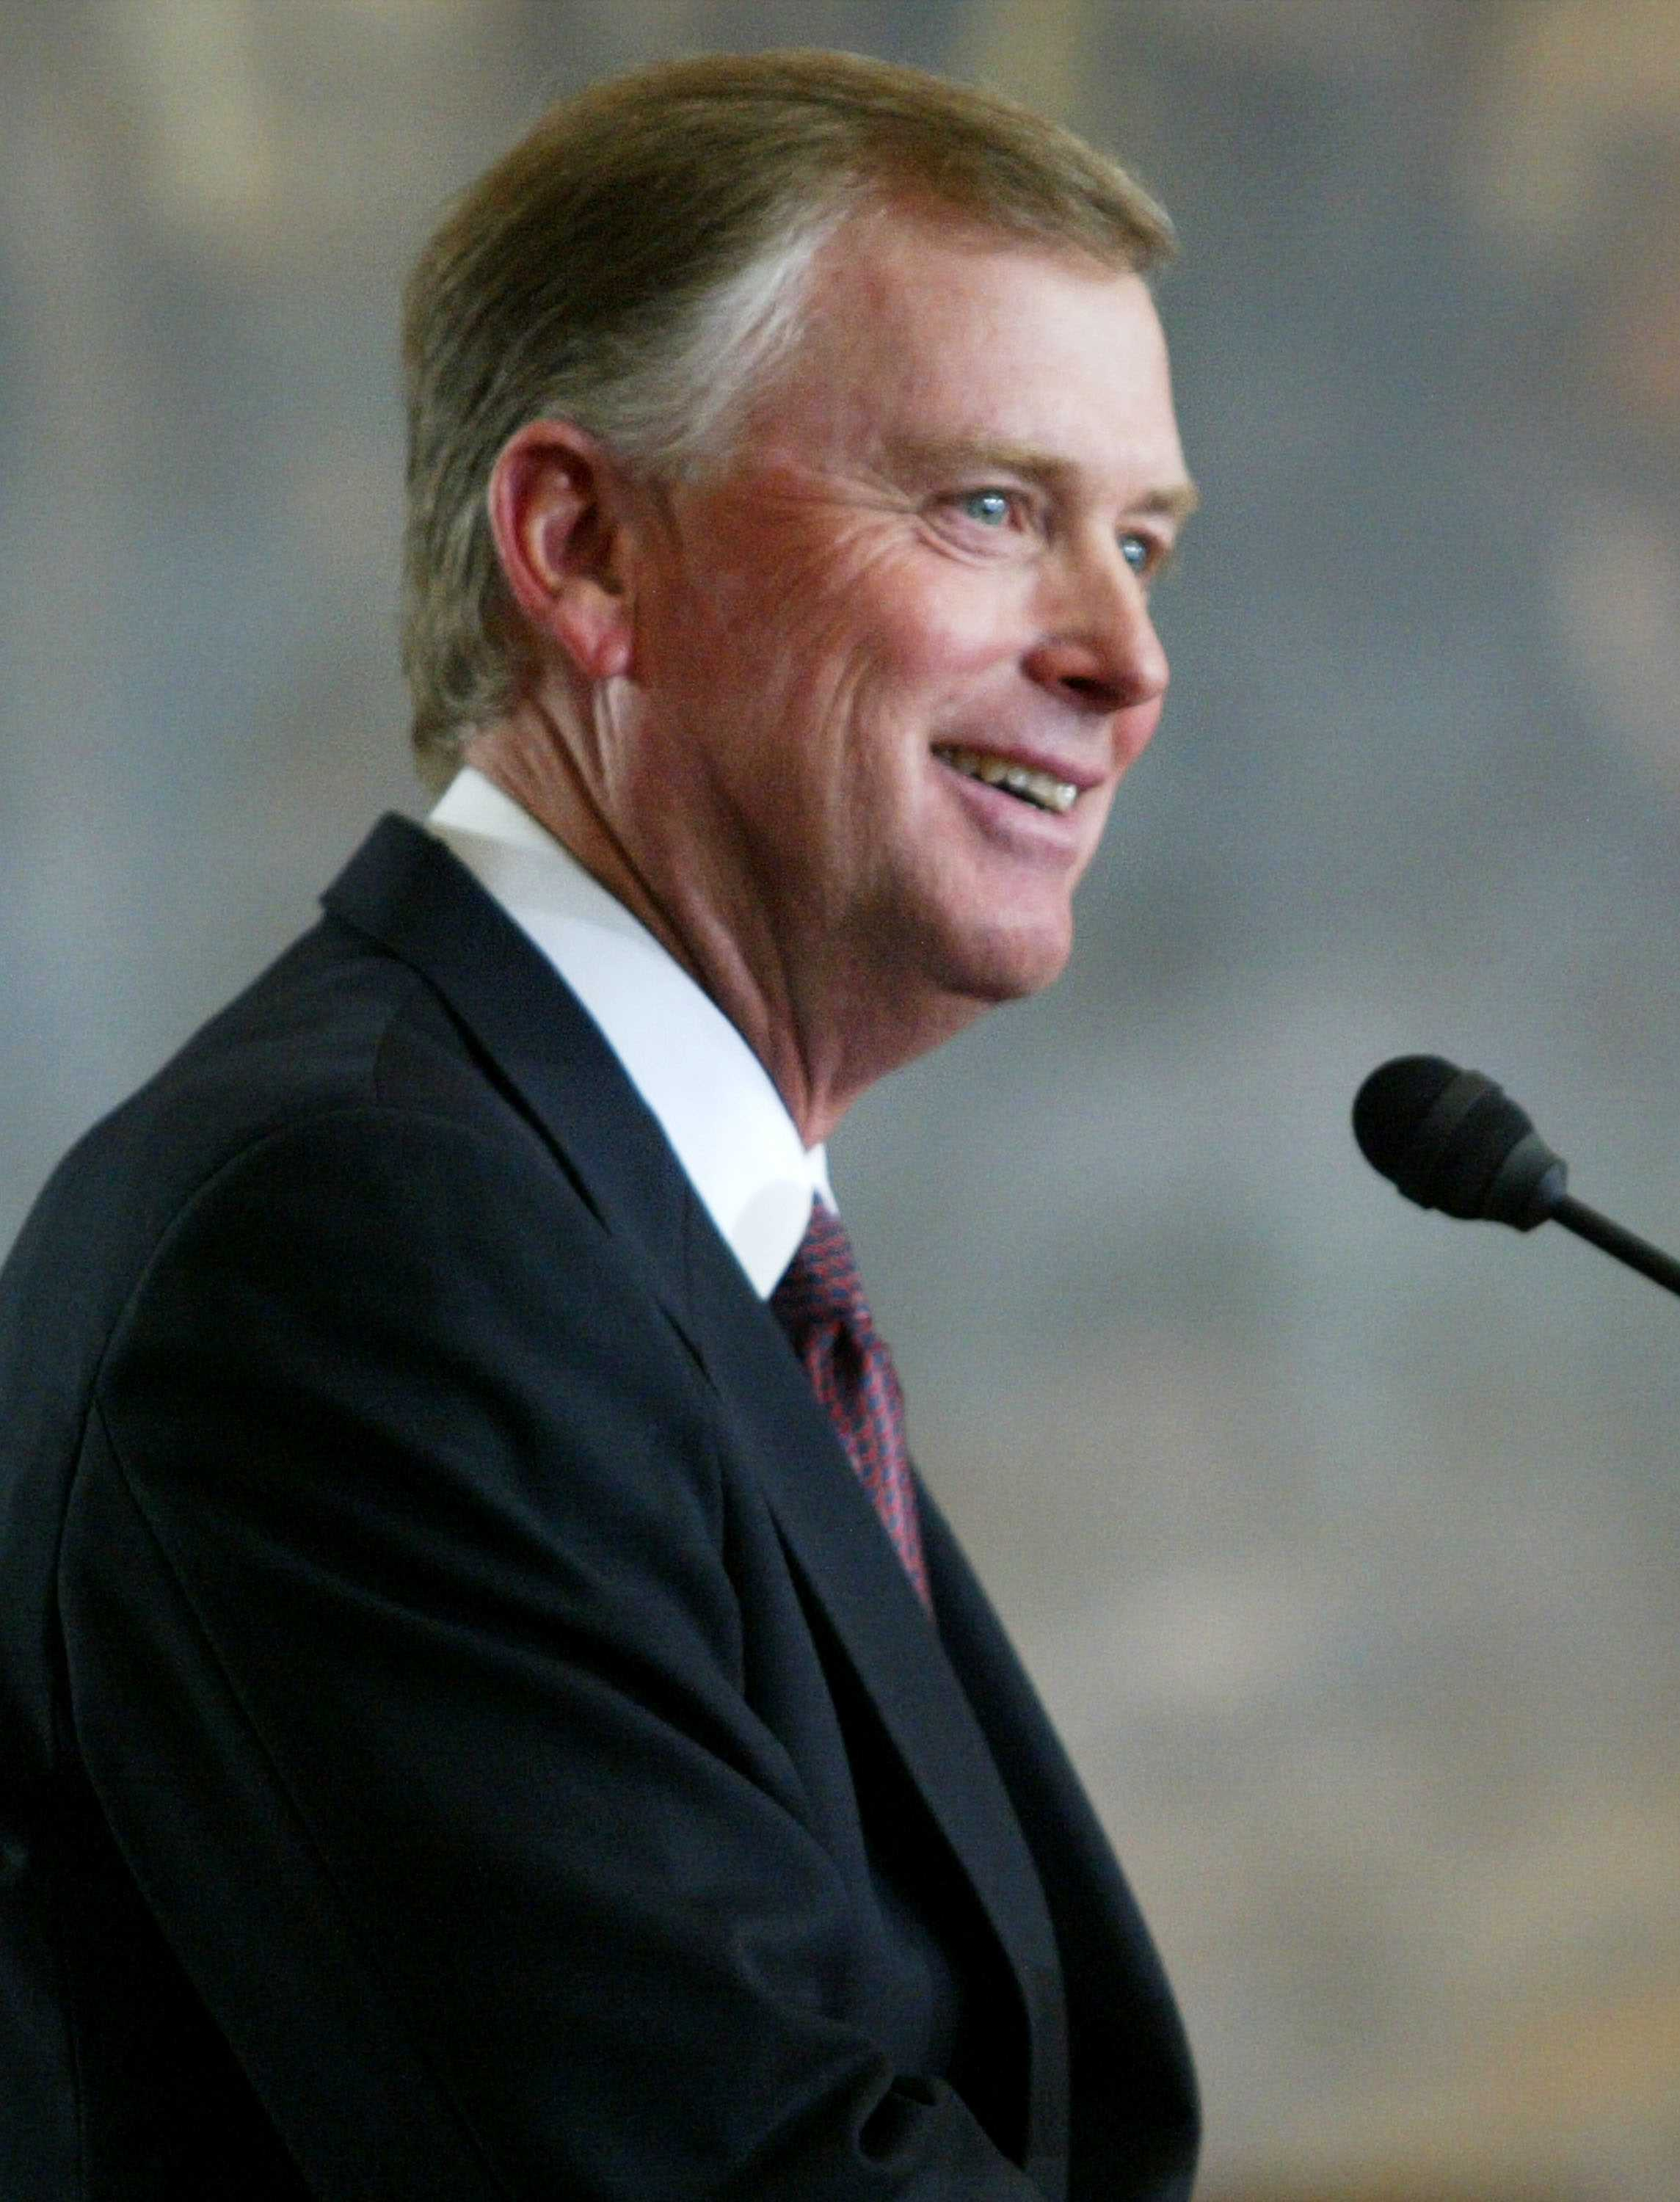 Dan Quayle was Vice President to which American President?